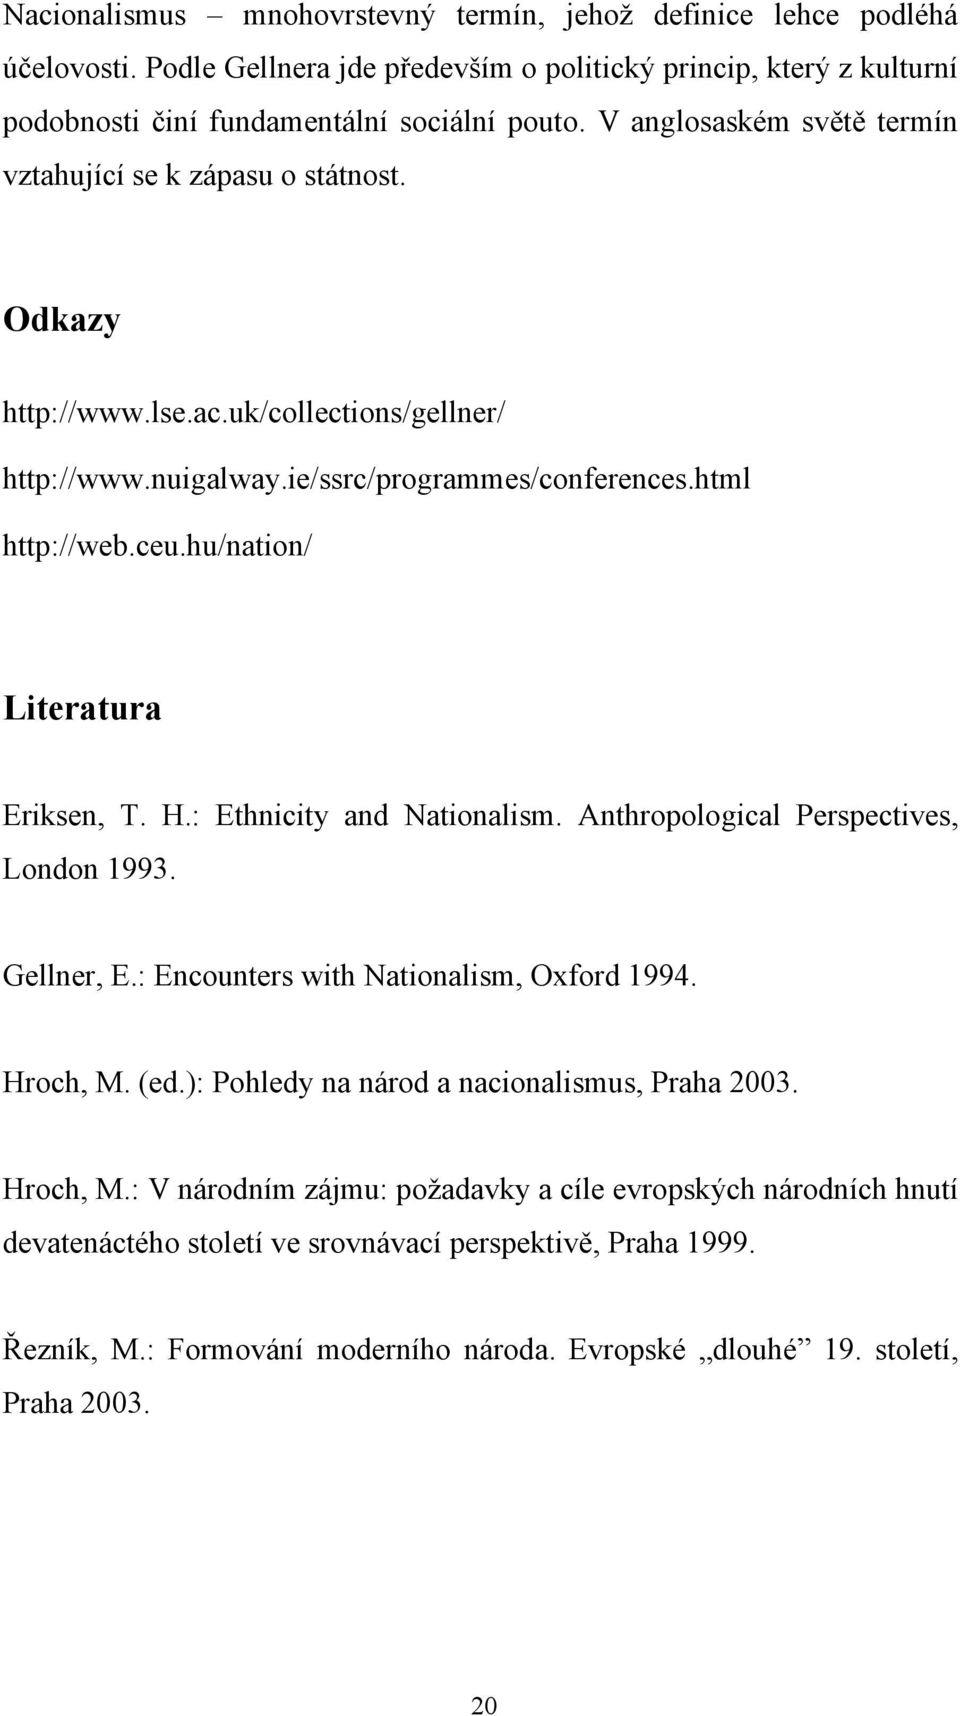 hu/nation/ Literatura Eriksen, T. H.: Ethnicity and Nationalism. Anthropological Perspectives, London 1993. Gellner, E.: Encounters with Nationalism, Oxford 1994. Hroch, M. (ed.